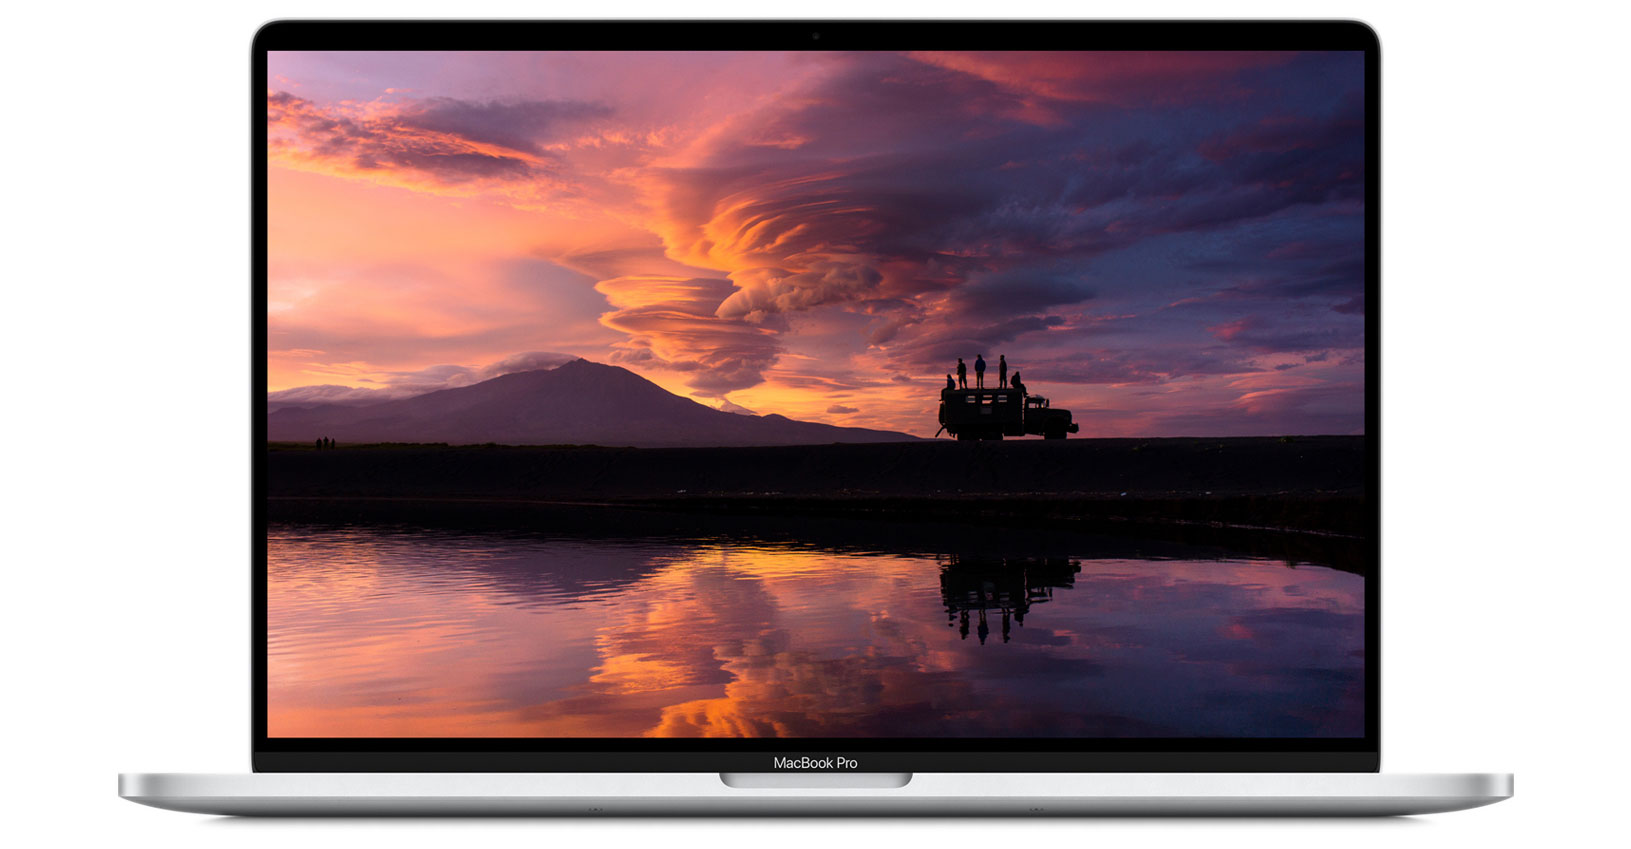 https://www.macfreak.nl/modules/news/images/zArt.MacBookPro16inch2019Display.jpg